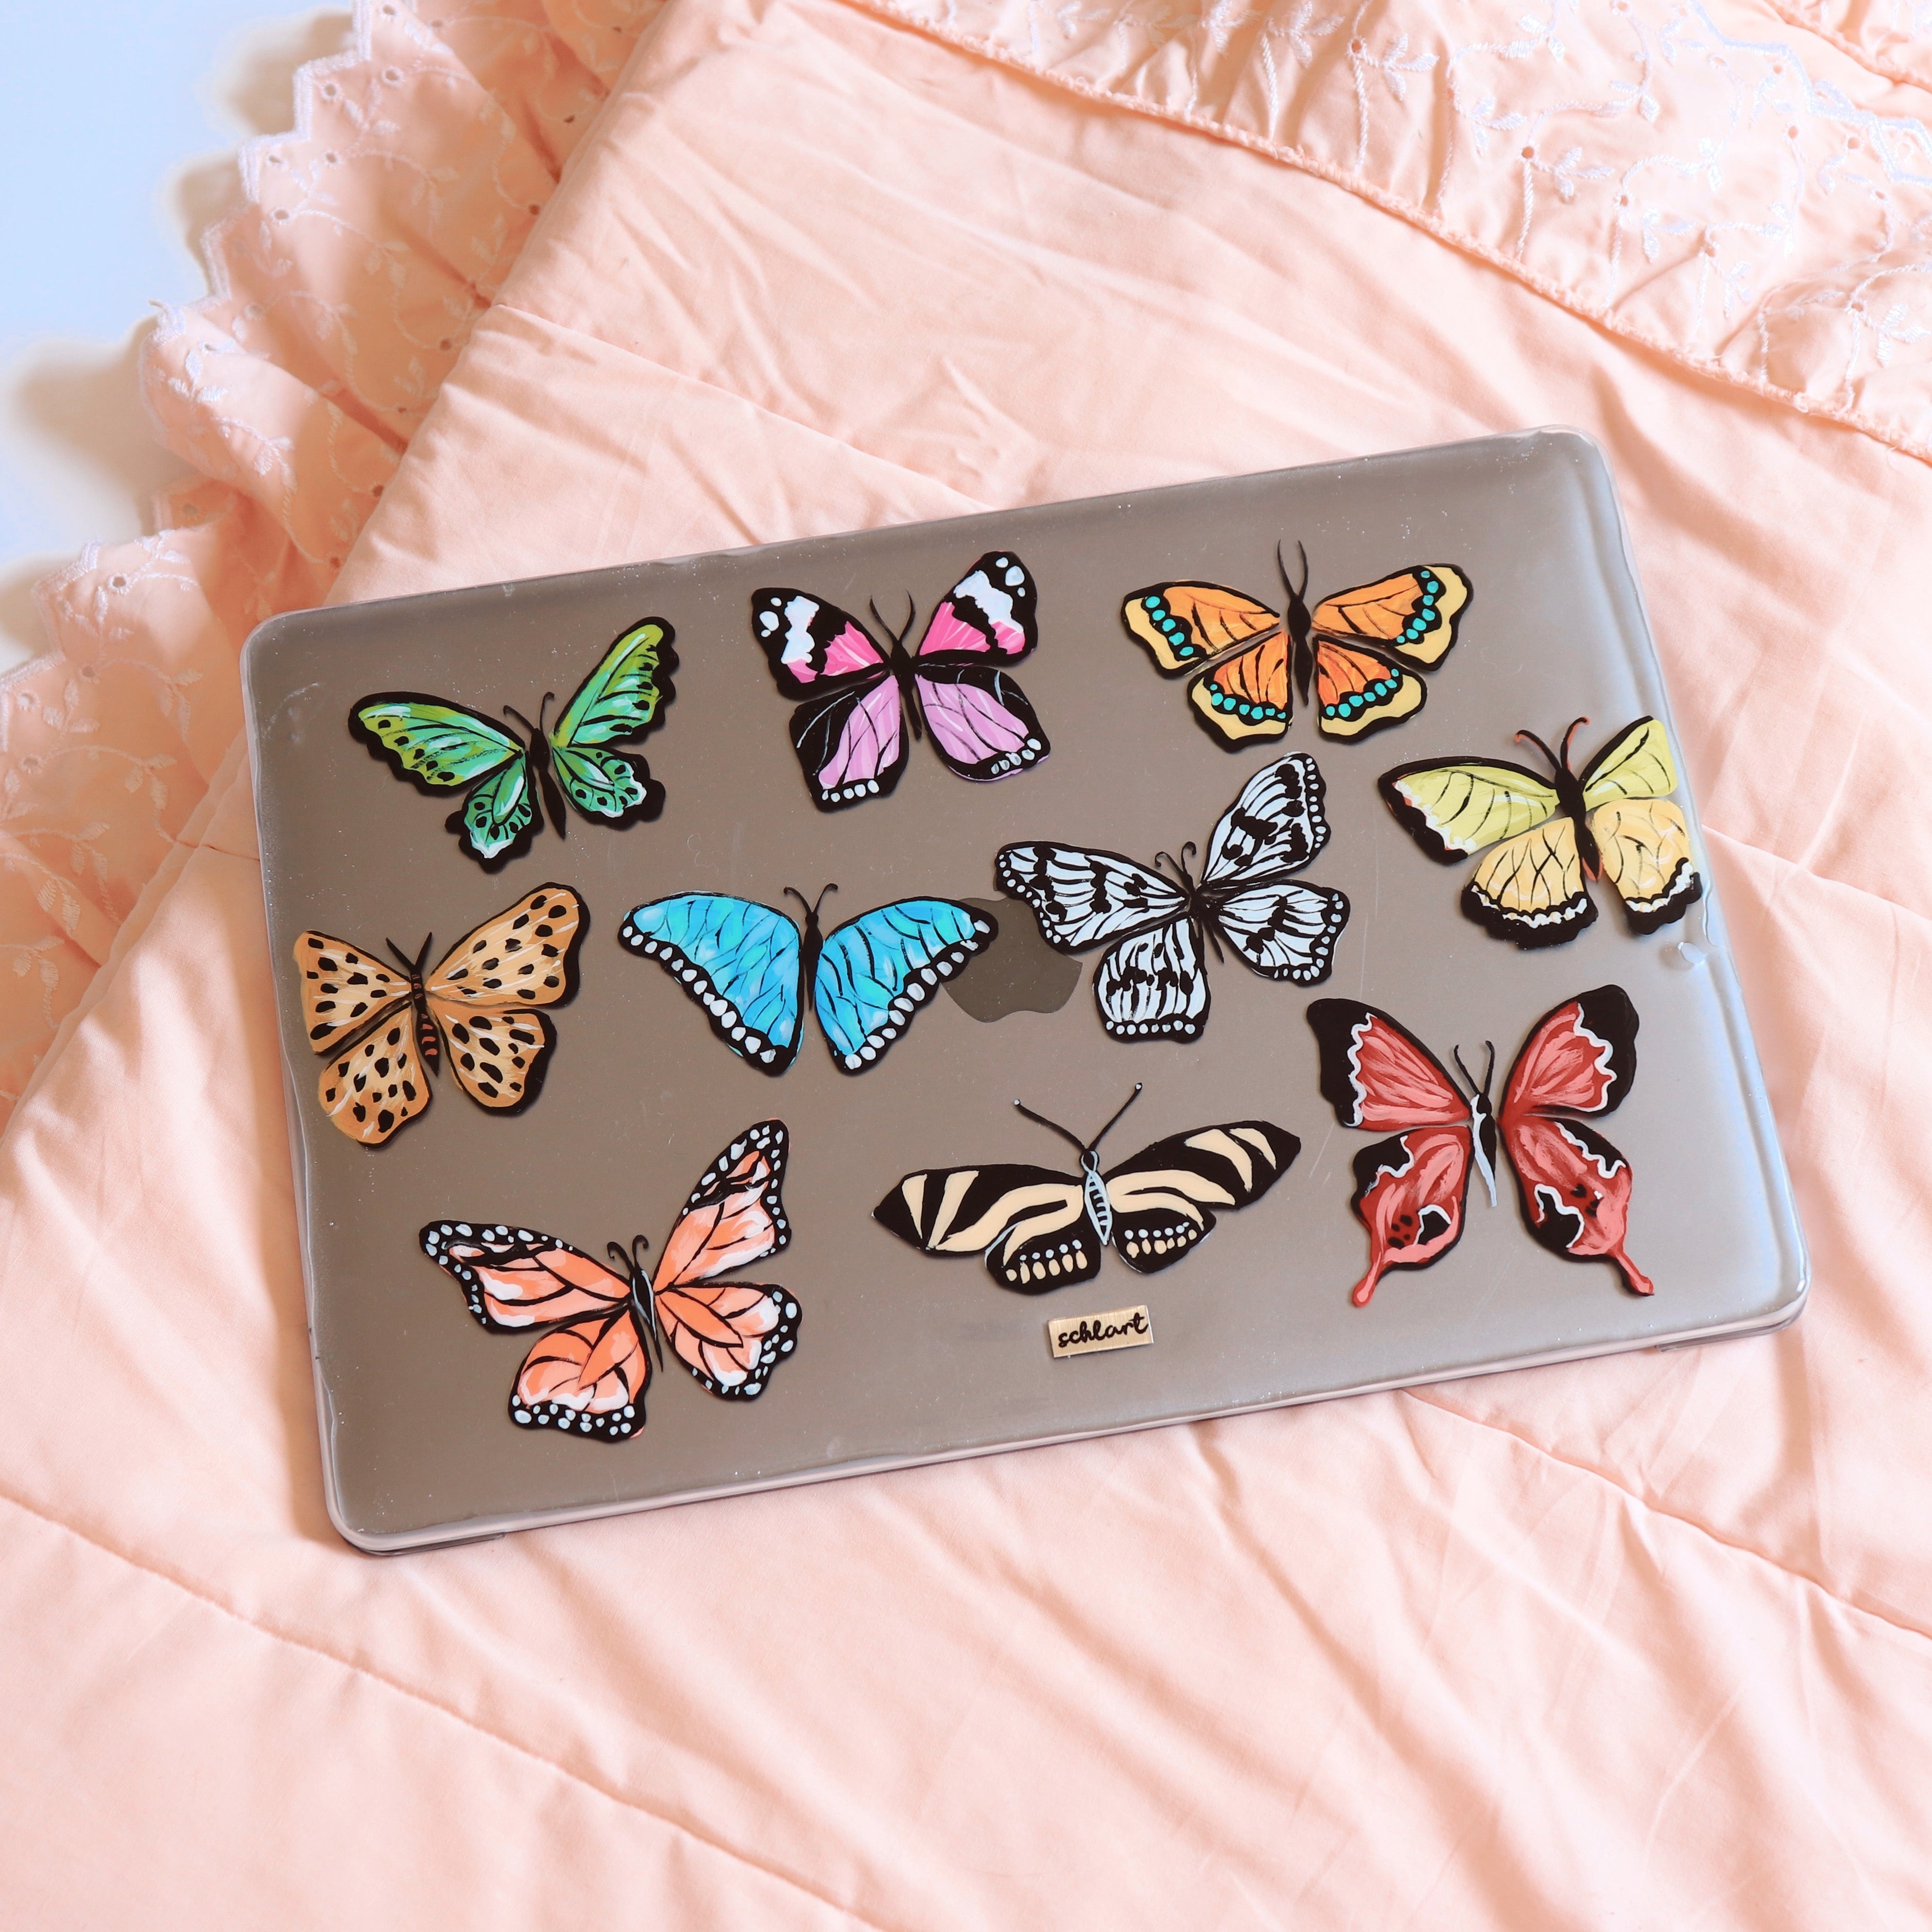 Lepidoptera Macbook case